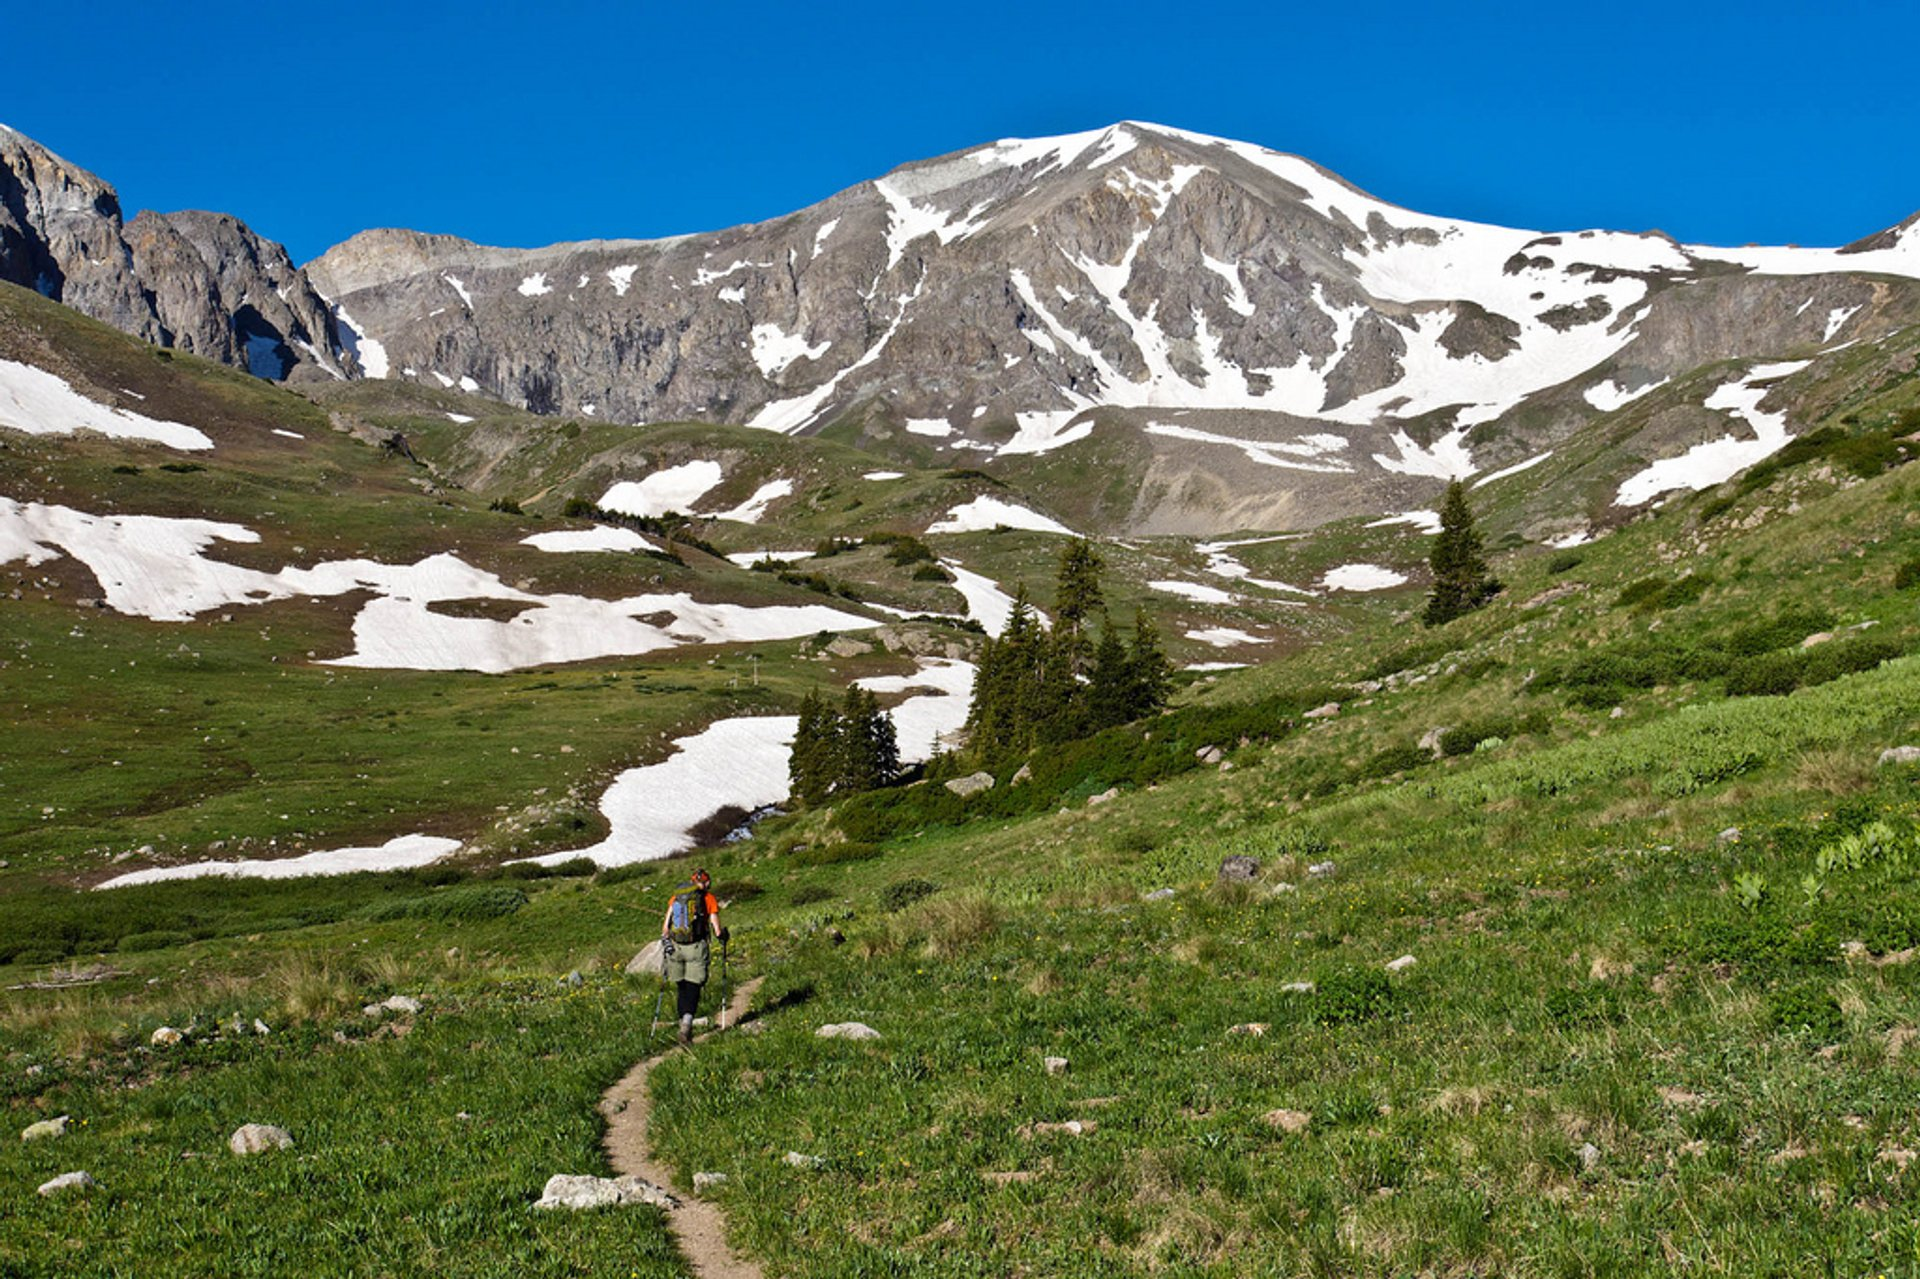 Hiking the Colorado Trail in Colorado - Best Time